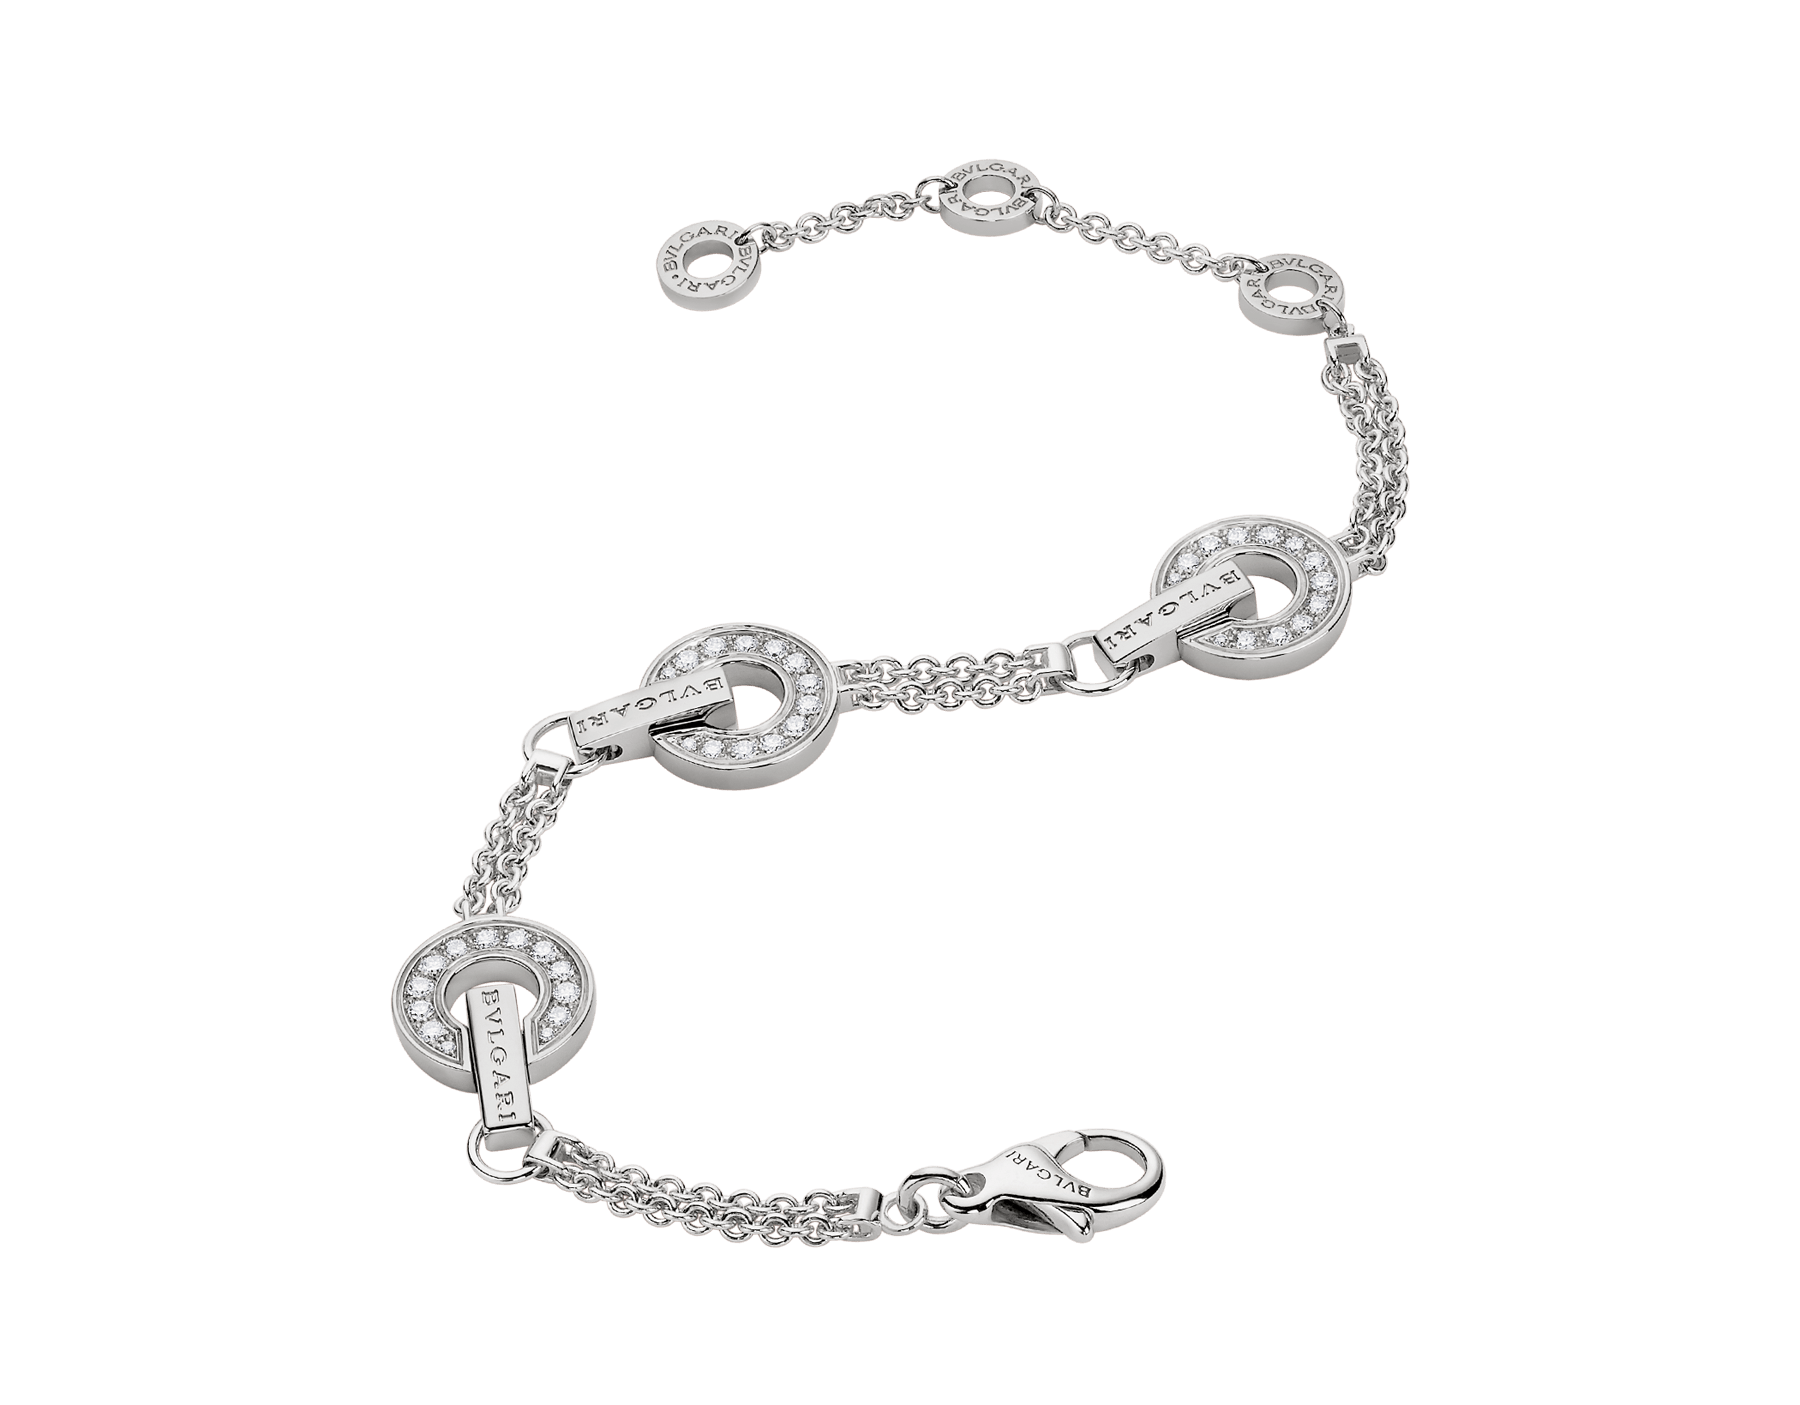 BVLGARI BVLGARI openwork 18 kt white gold bracelet set with full pavé diamonds on the circular elements BR859065 image 2